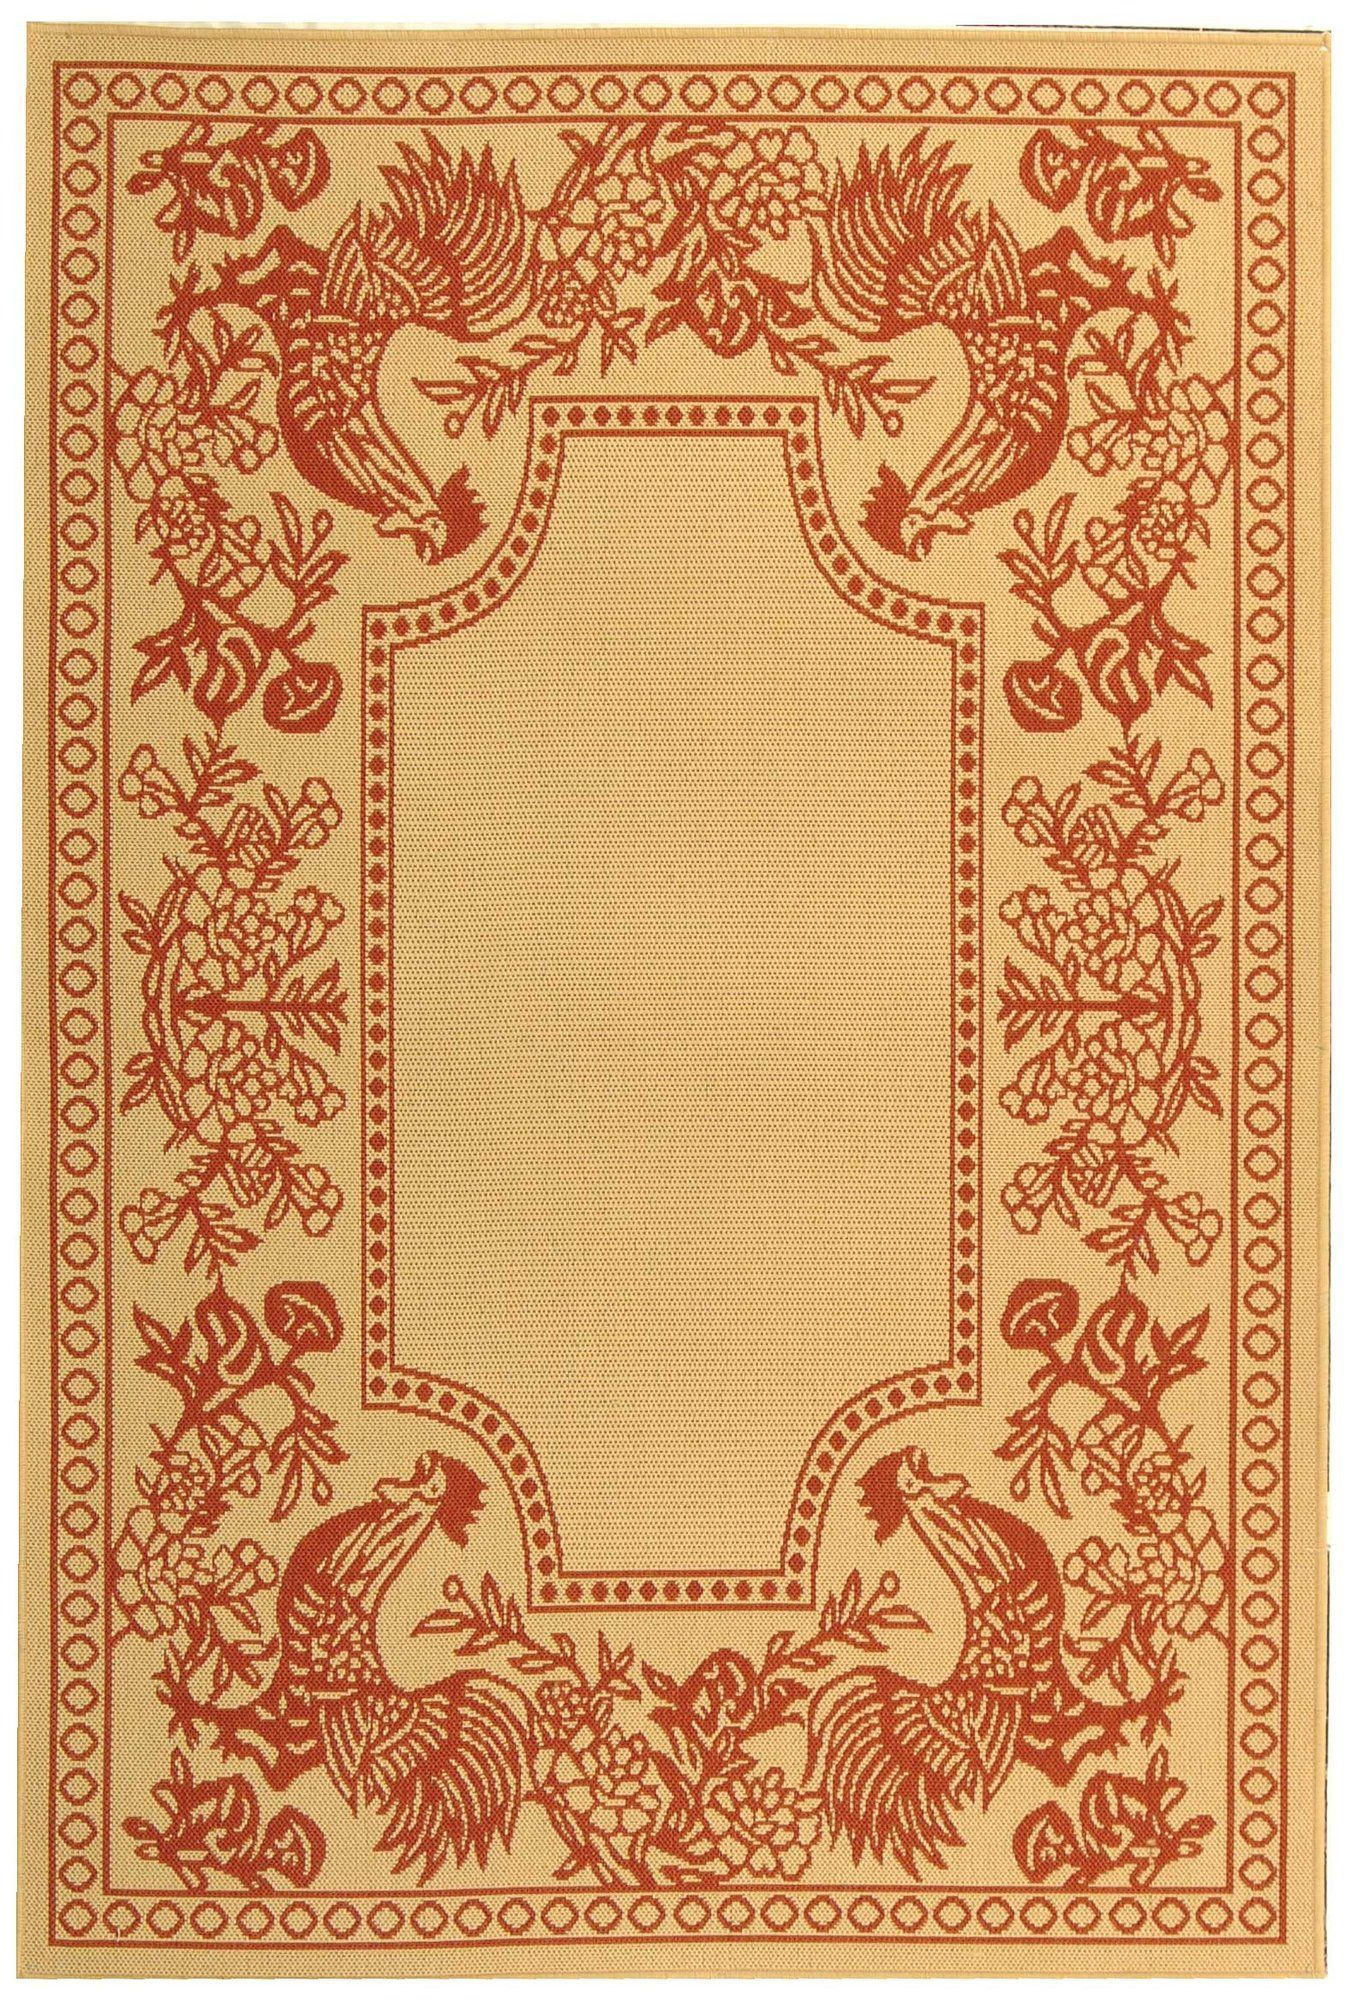 Wysocki Natural Red Area Rug In 2020 French Country Decorating Country House Decor Rooster Rugs